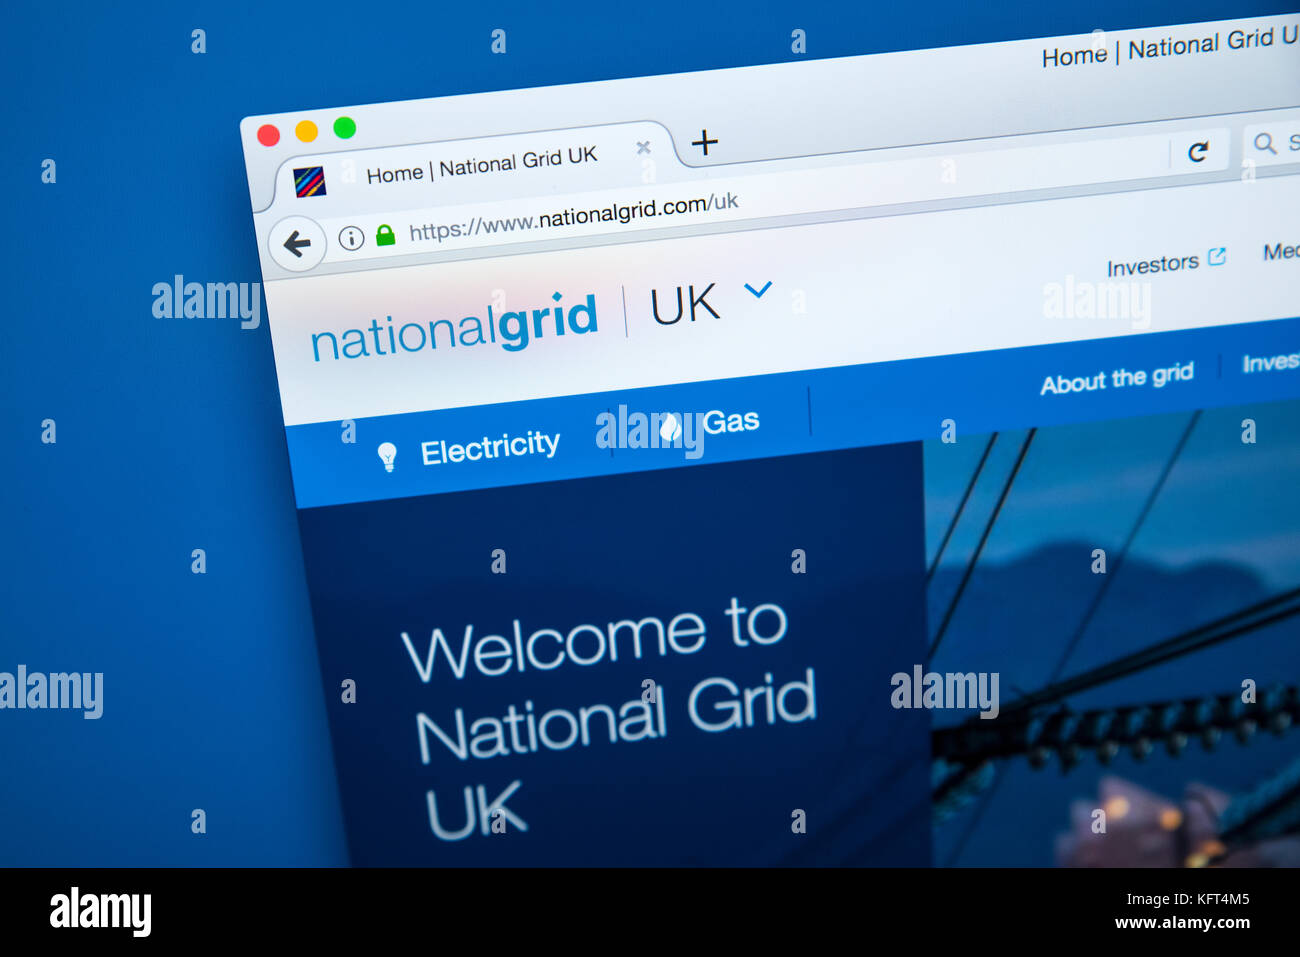 National grid uk stock photos national grid uk stock images alamy london uk october 17th 2017 the homepage of the official website for the biocorpaavc Image collections